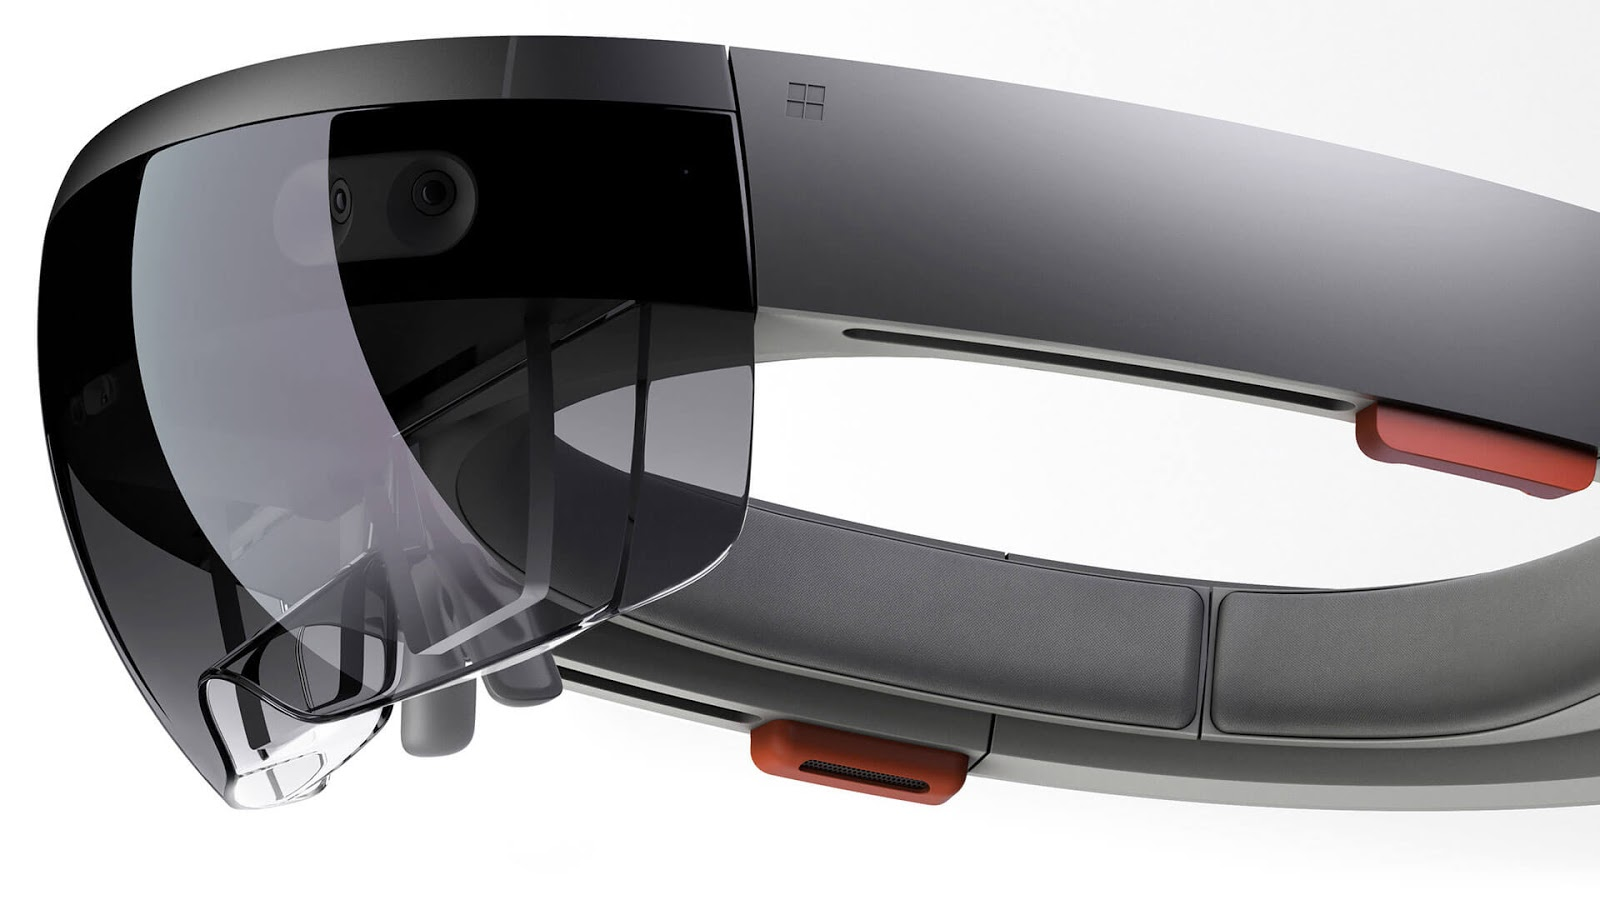 HoloLens 2 Unveiled at MWC 2019 by Microsoft - Madd Apple News